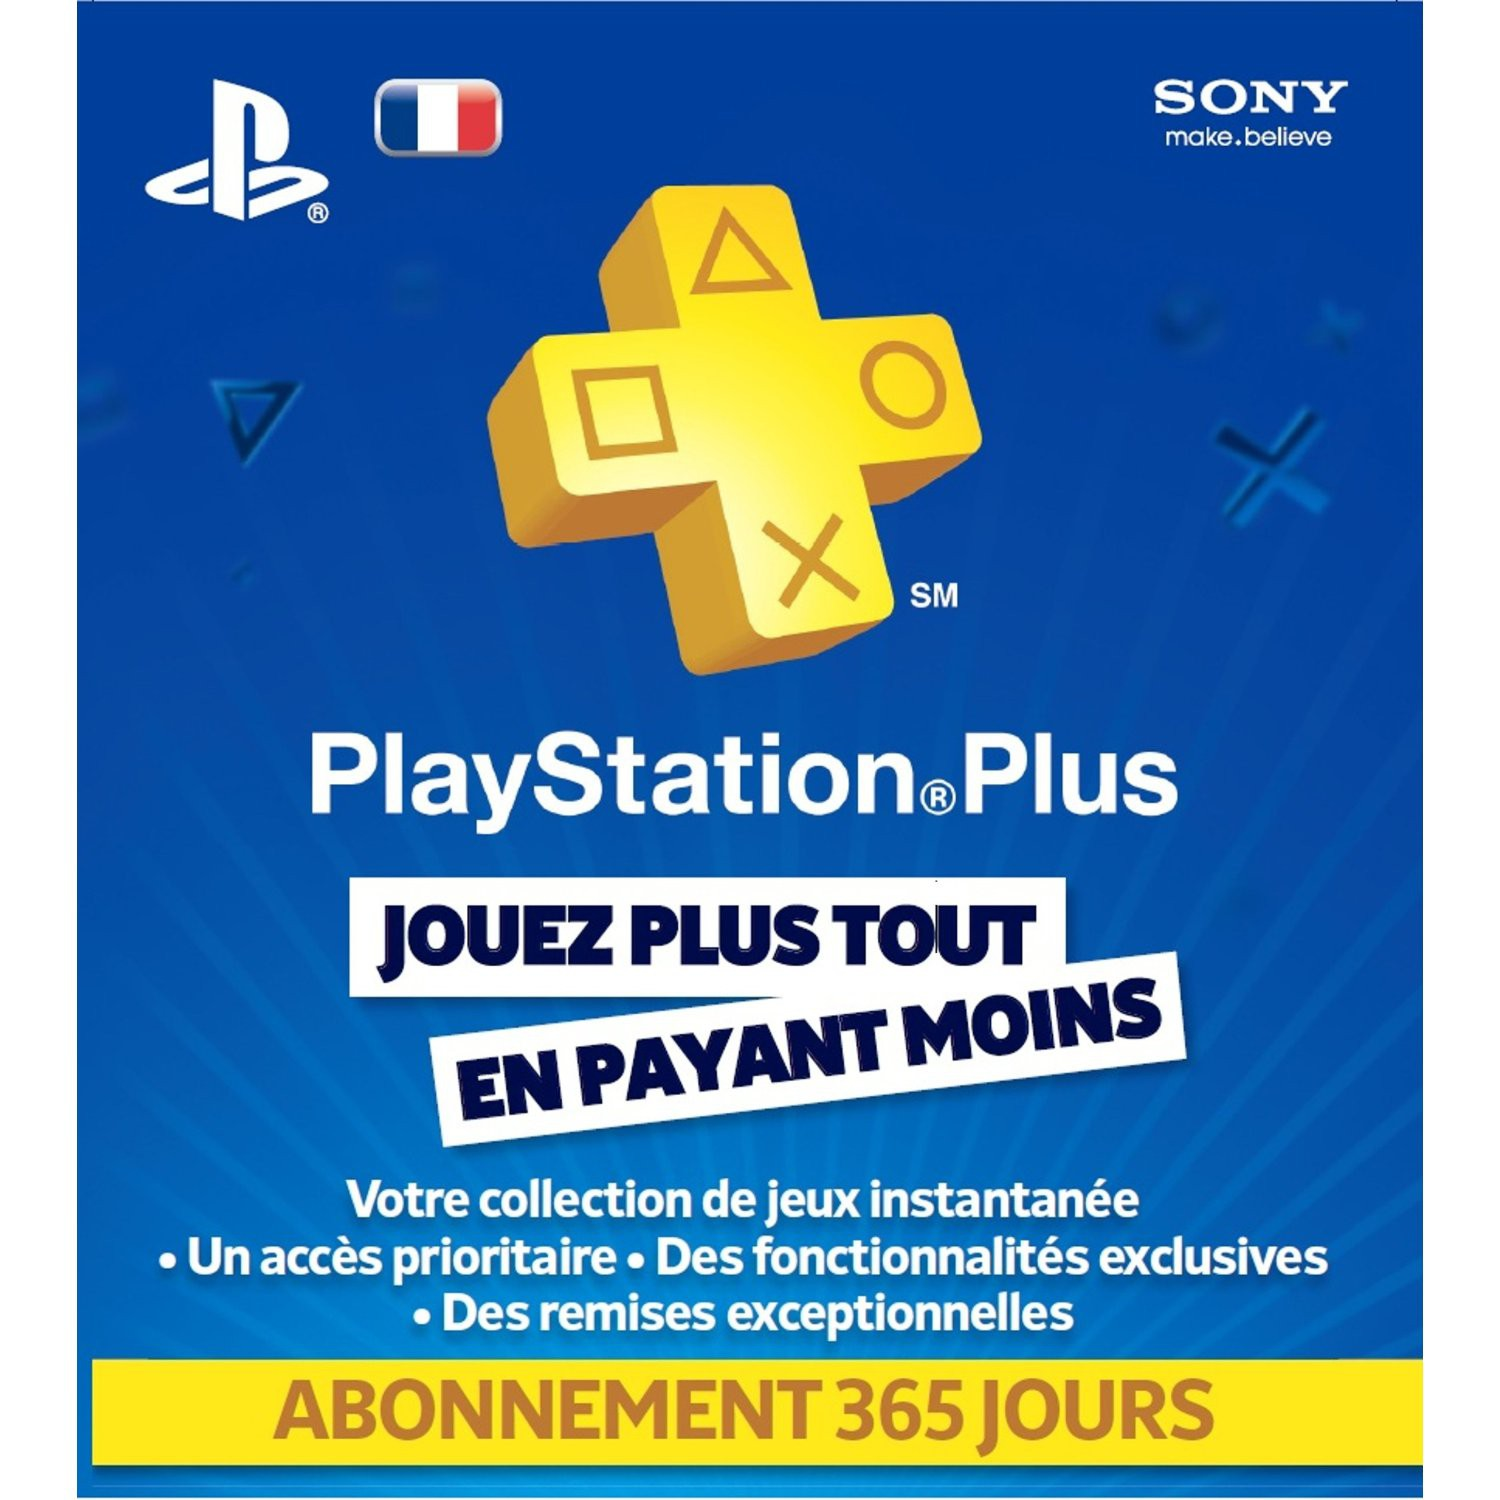 Image2 de [Infos] Le PlayStation Plus a sa carte